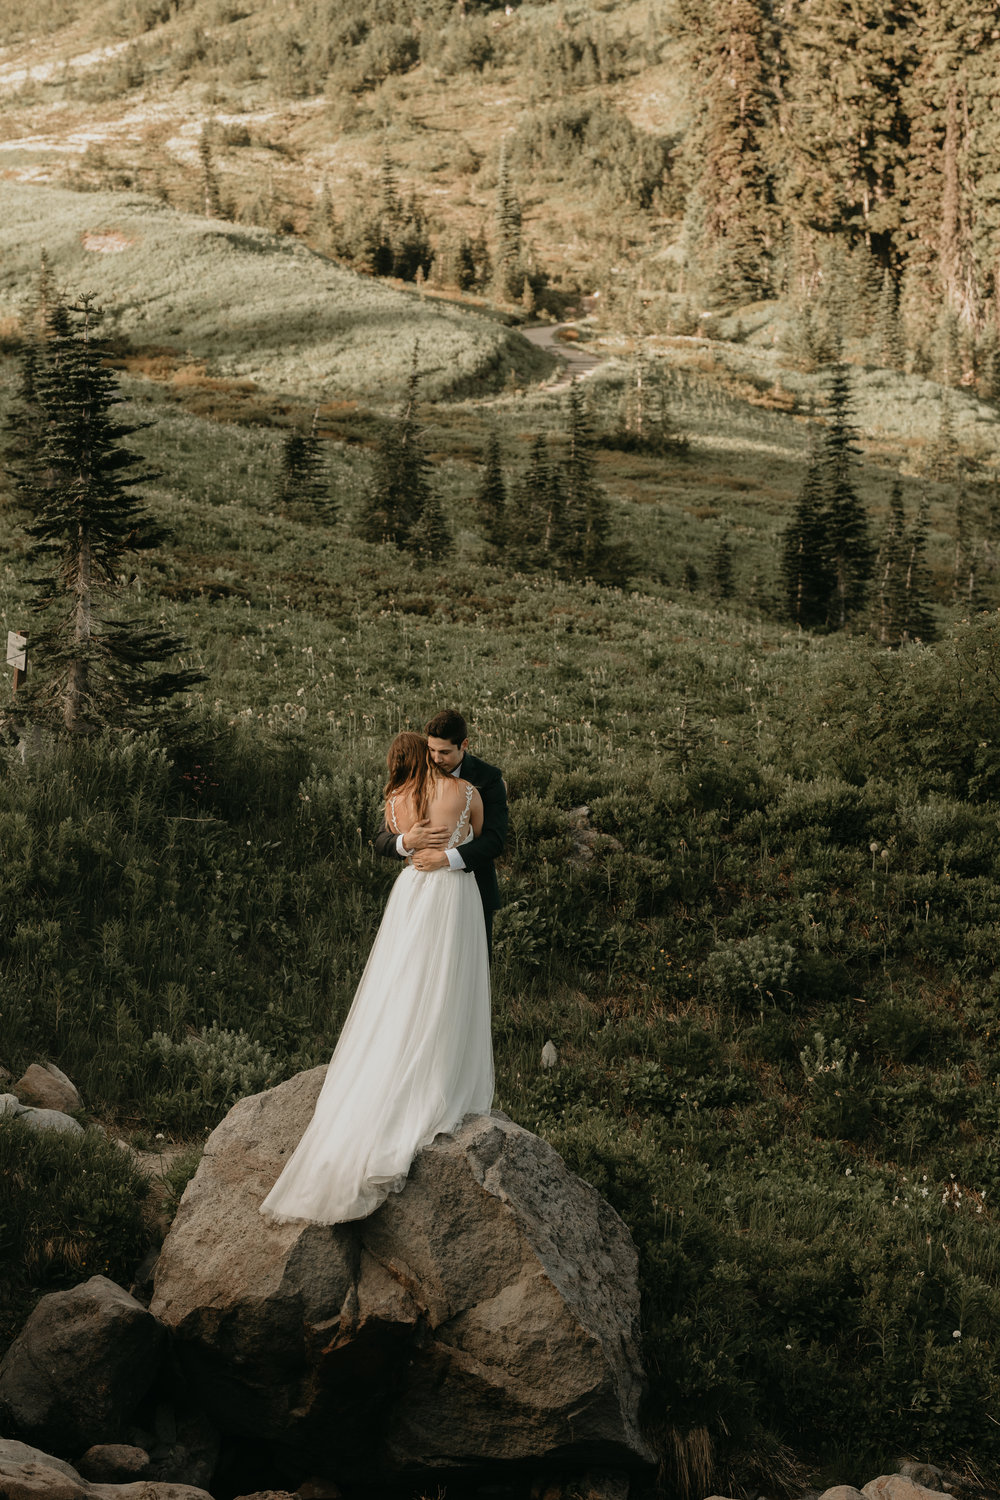 Nicole-Daacke-Photography-Mt-Rainier-elopement-photographer-washington-mountain-epic-wedding-photography-wildflowers-at-rainier-pine-tree-cloudy-summer-day-at-mountain-rainier-18.jpg